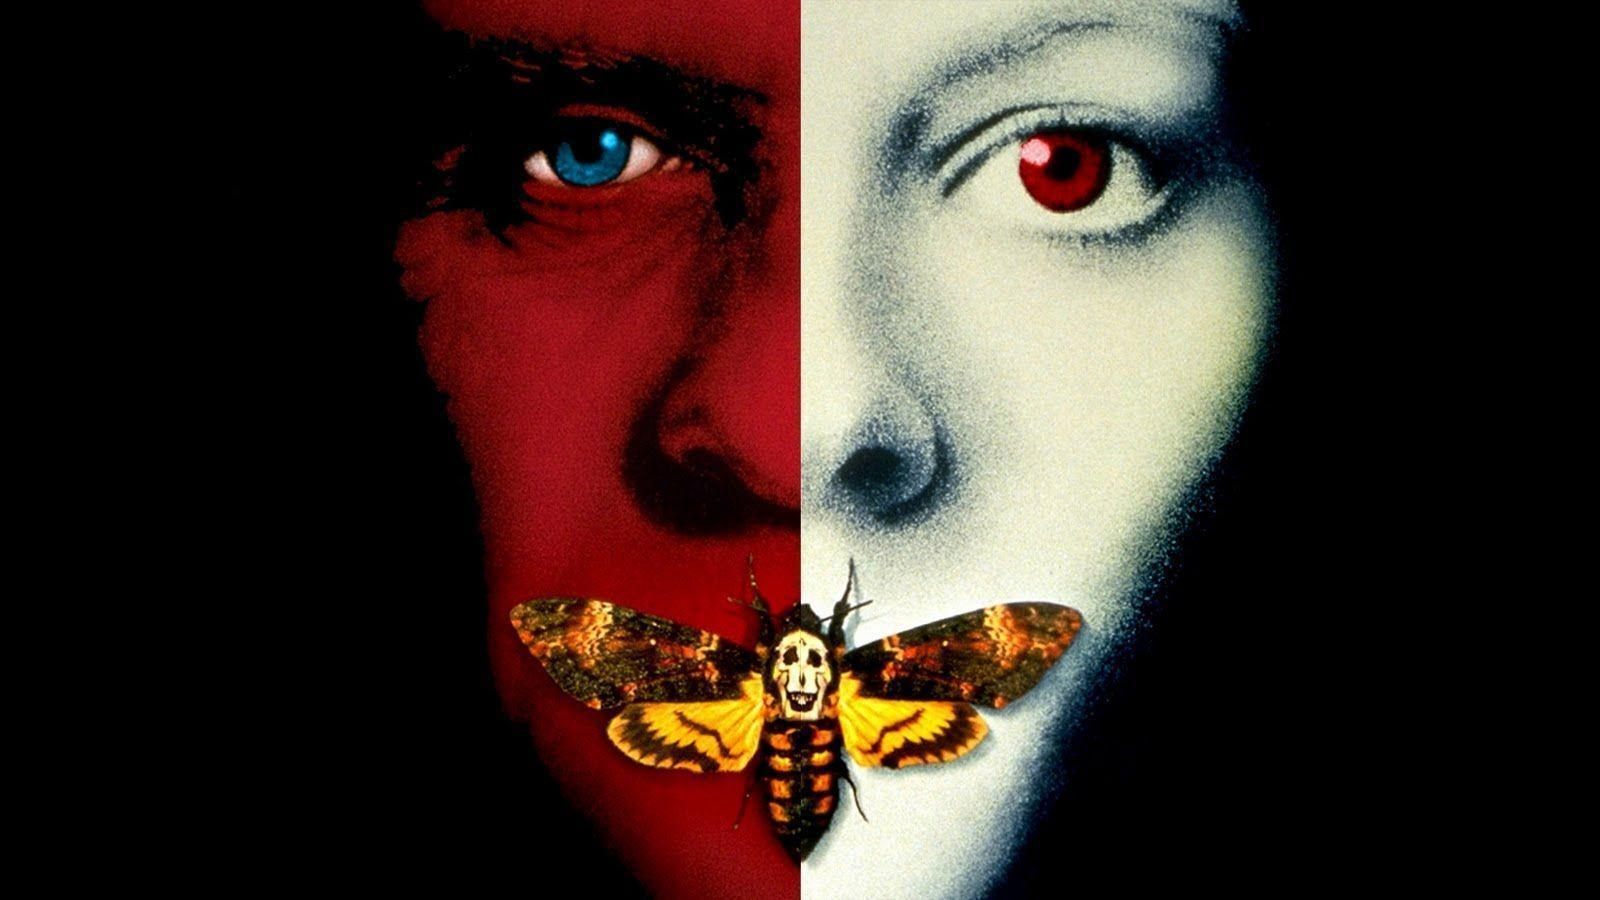 theme in the silence of the lambs Jodie foster stars as clarice starling, a top student at the fbi's training academy jack crawford (scott glenn) wants clarice to interview dr hannibal lecter (anthony hopkins), a brilliant.